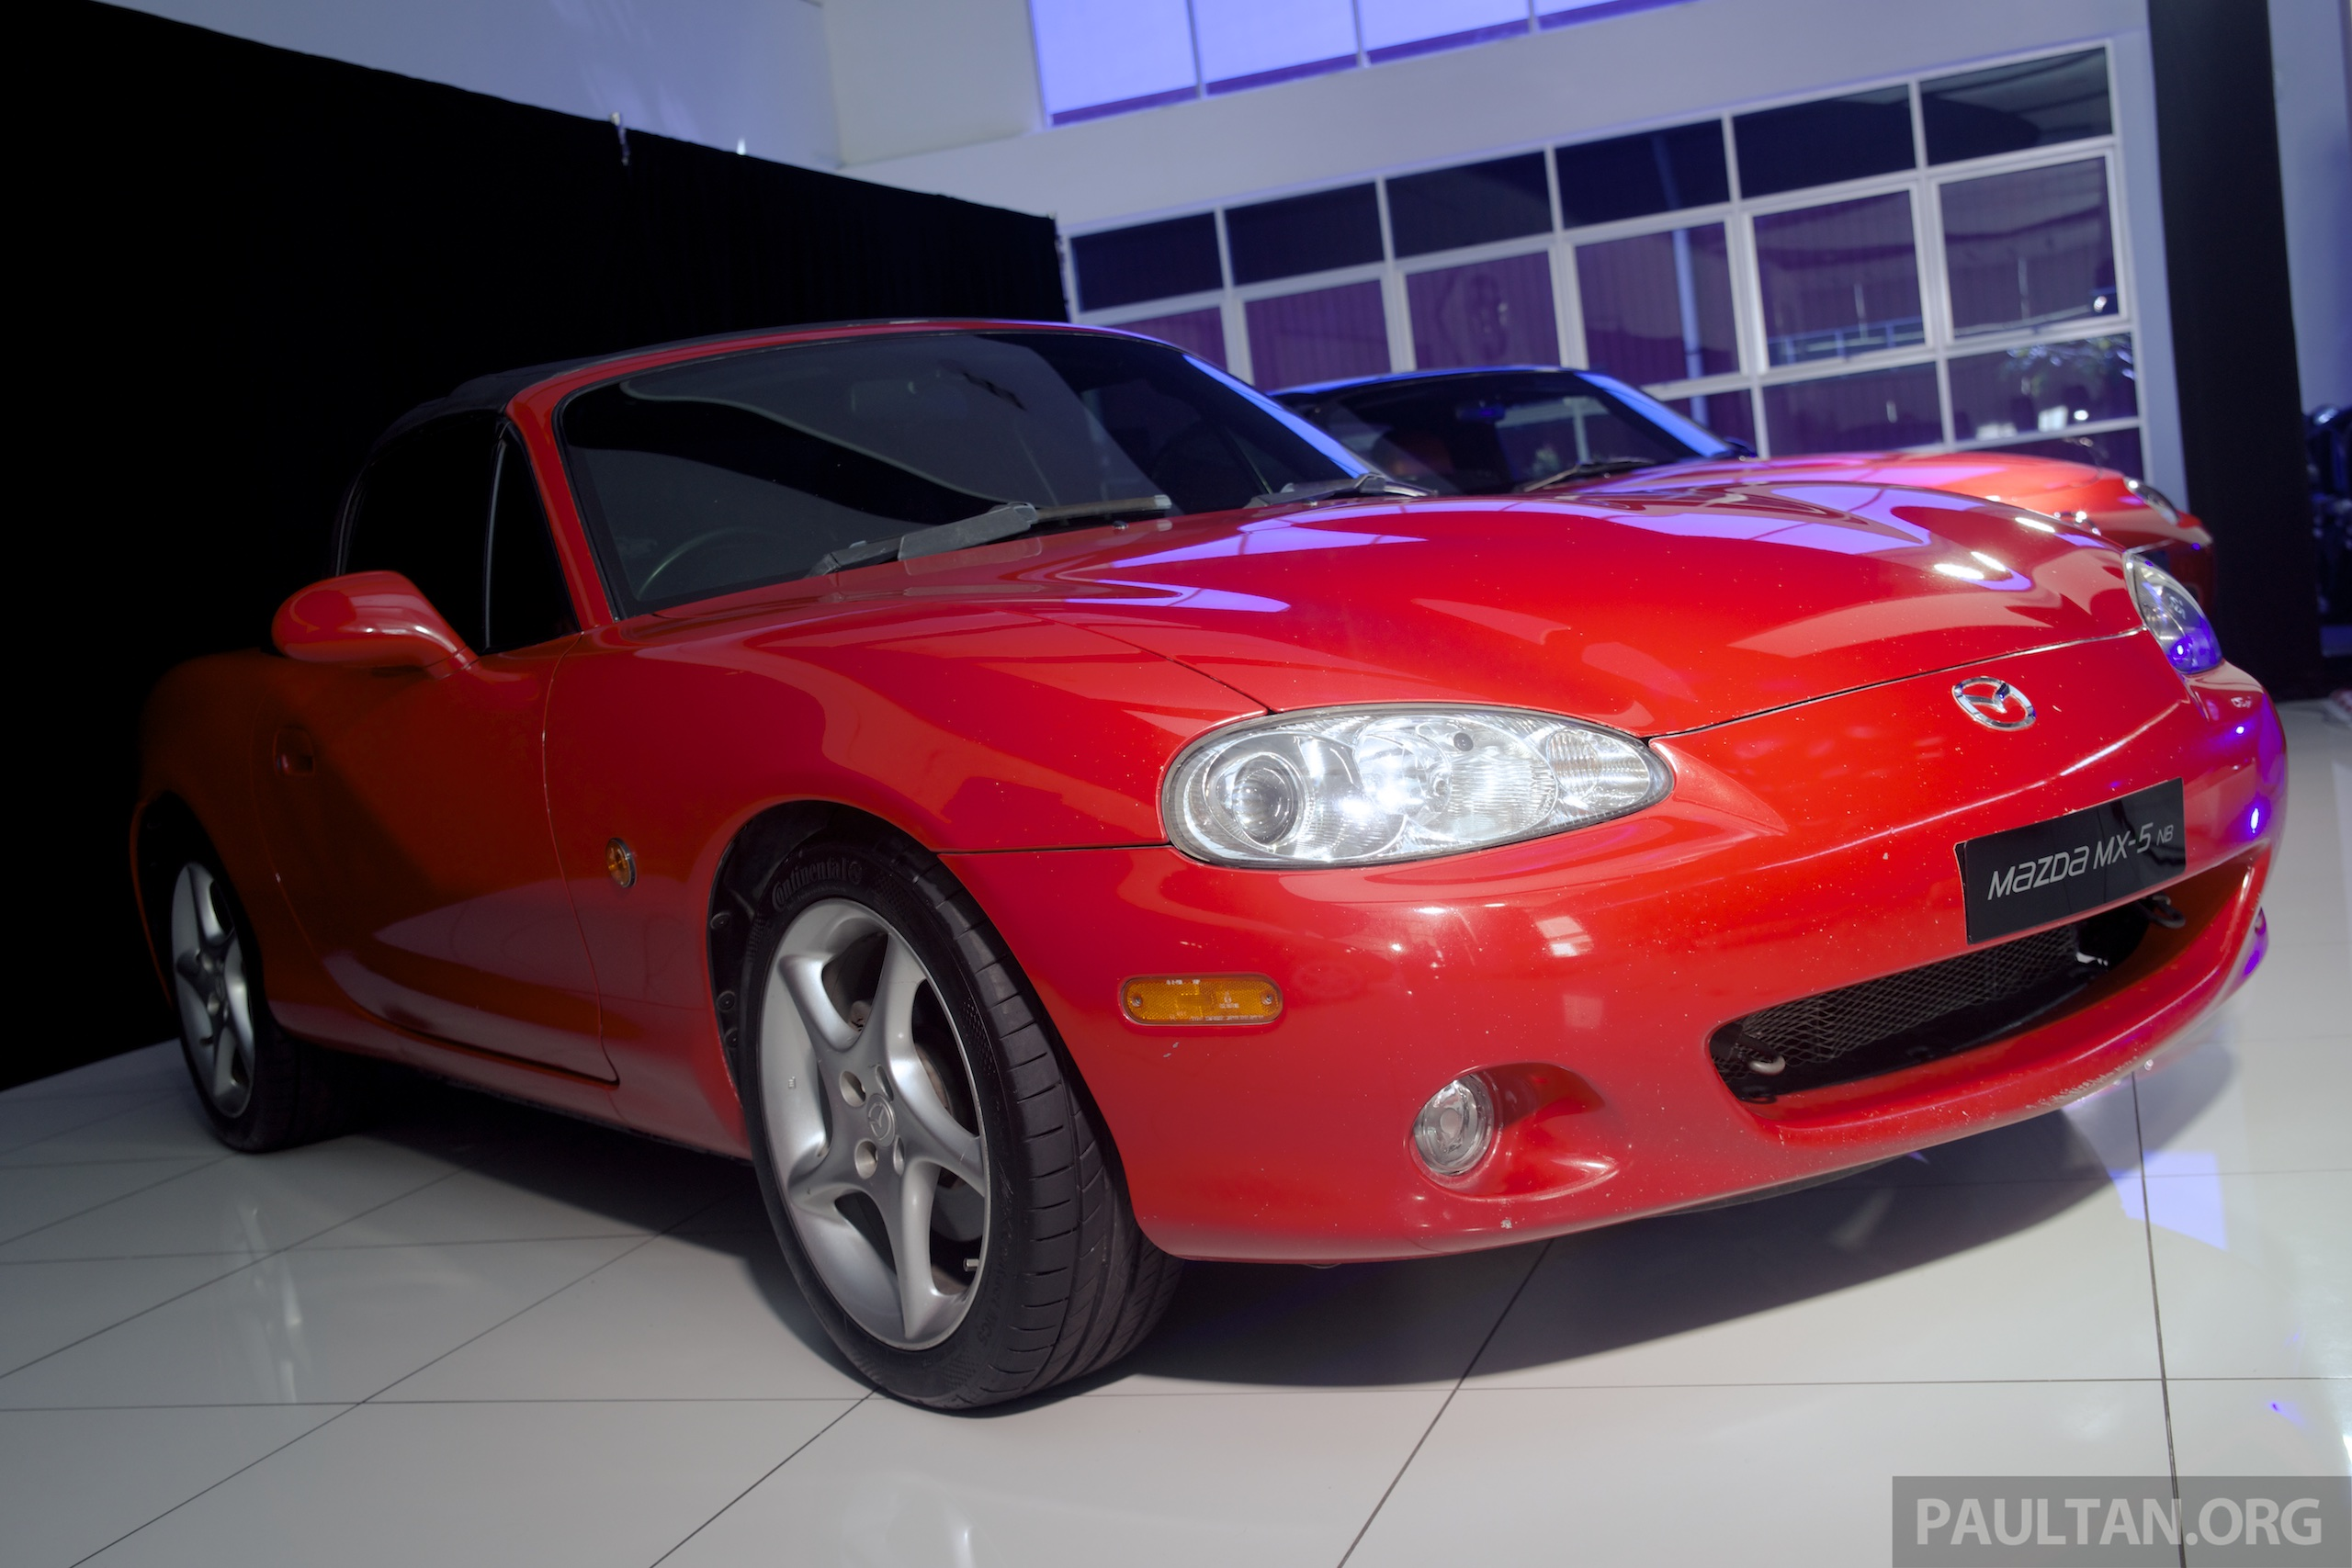 gallery mazda mx 5 through the years na nb nc image 370000. Black Bedroom Furniture Sets. Home Design Ideas